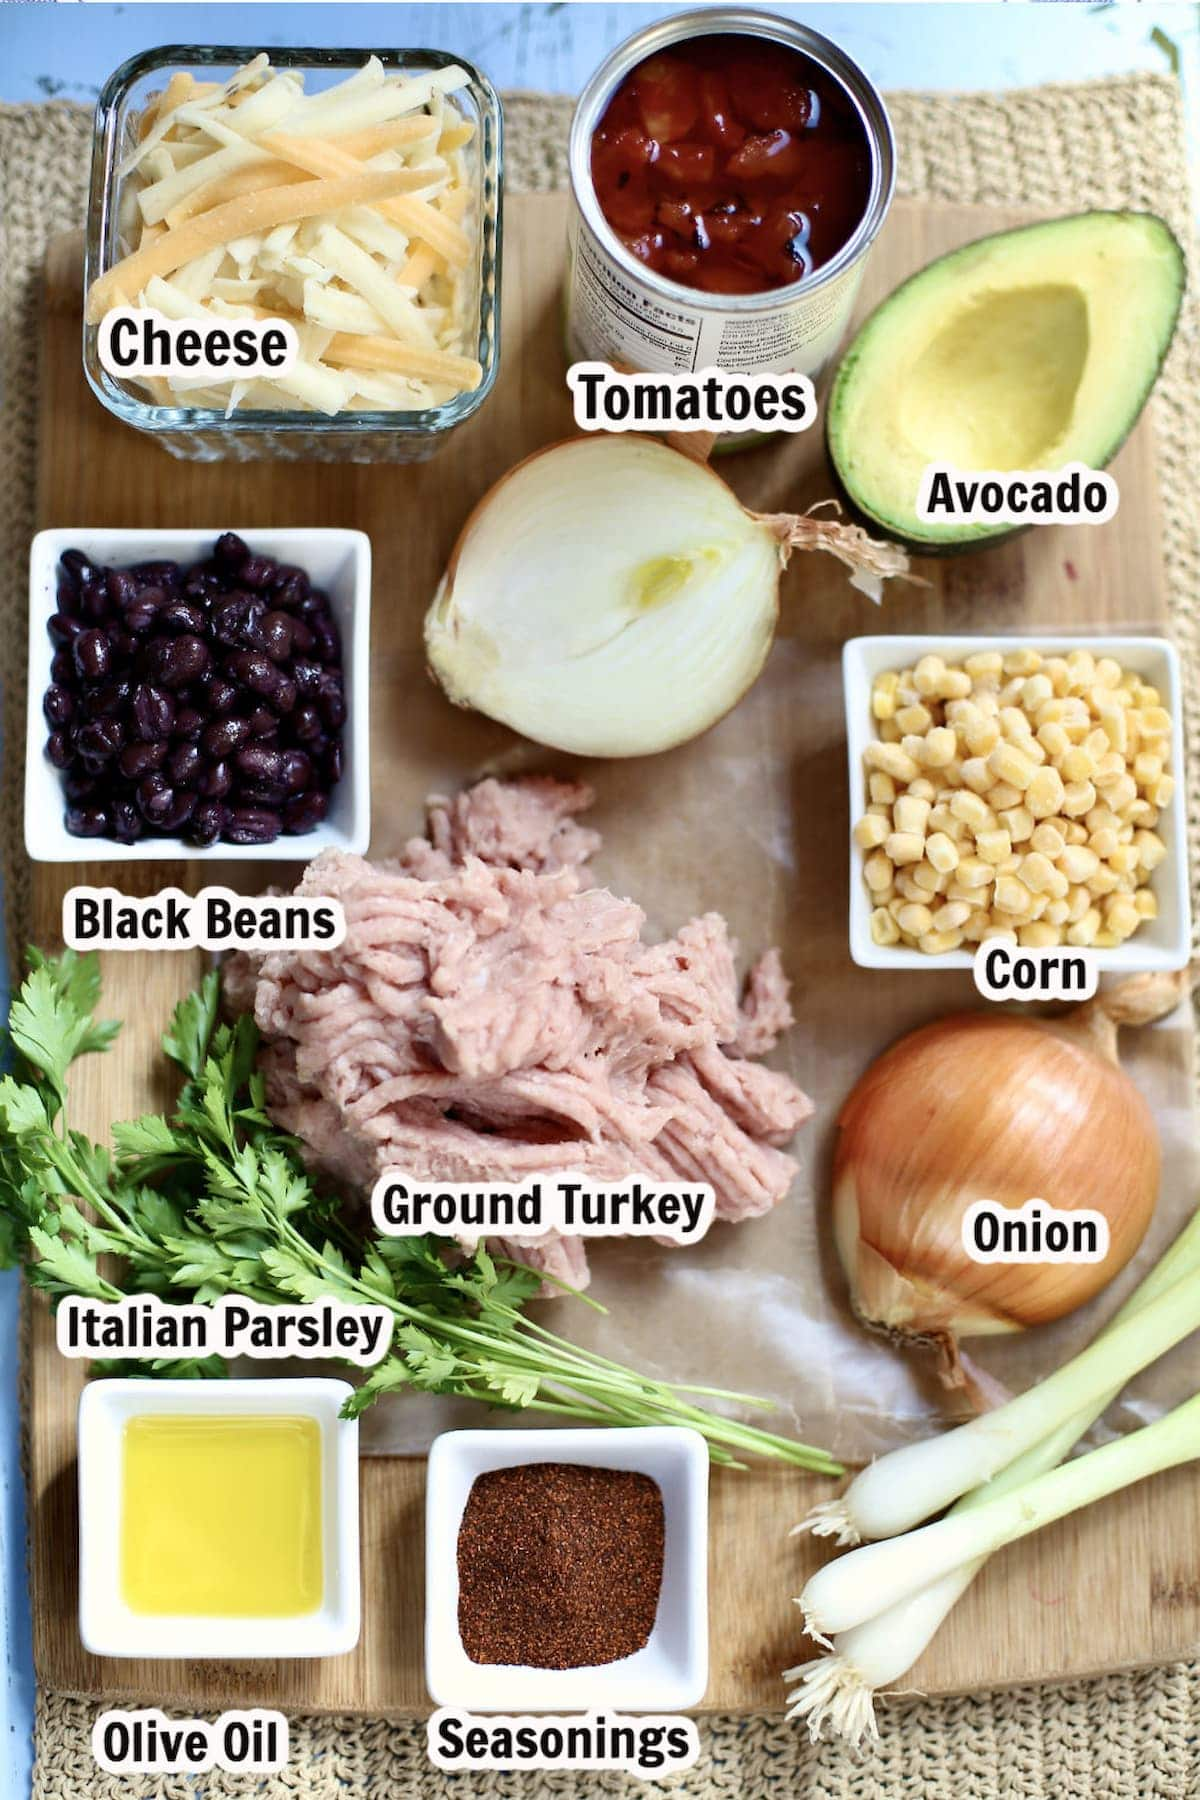 ingredients for a recipe marked with text overlay. Ground turkey, onion, black beans, cheese, avocado and corn.